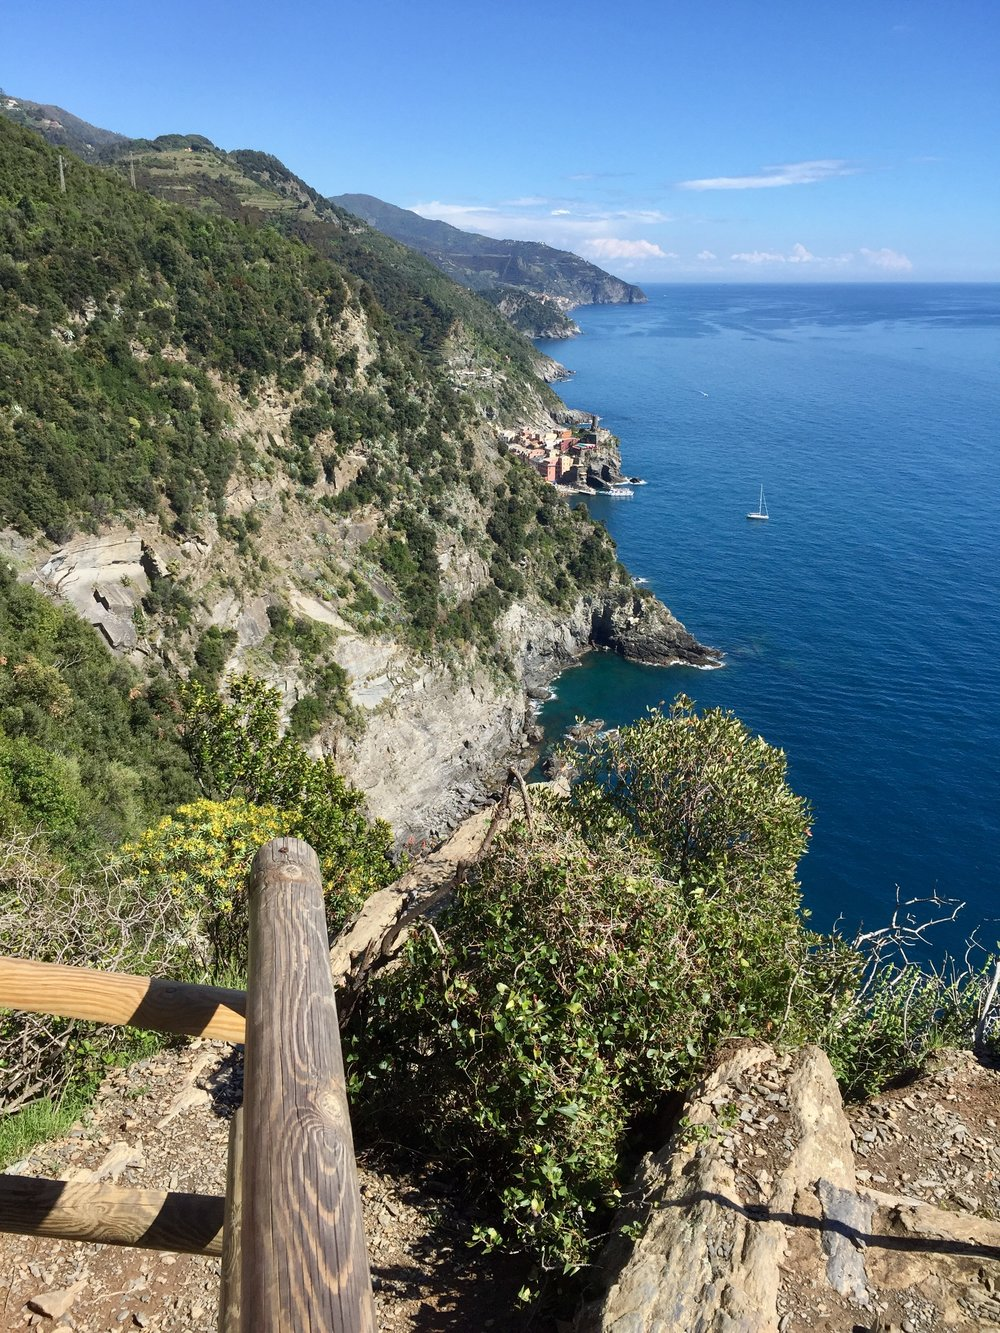 About half of the group hiked at least one of the rigorous Cinque Terre trails and were rewarded with jaw-dropping views like this.